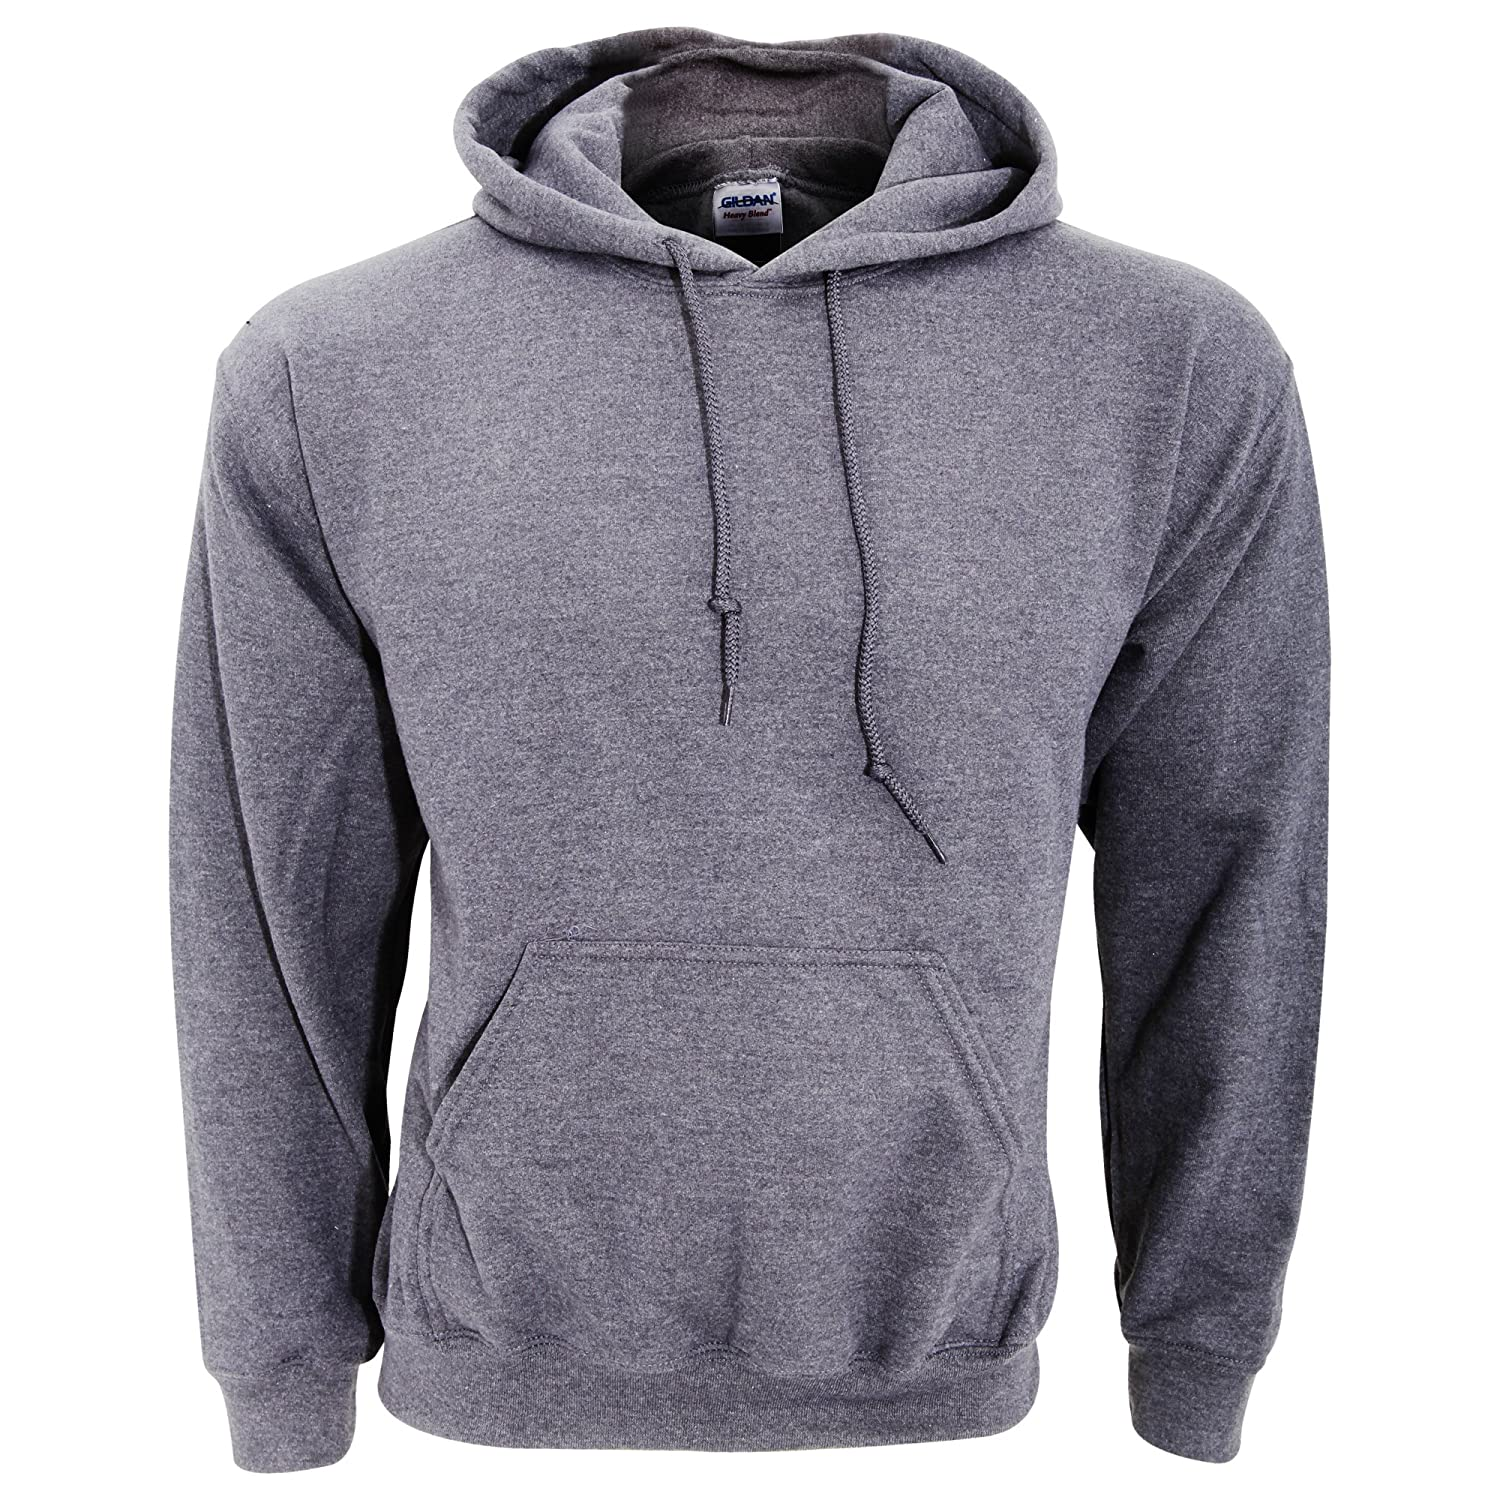 d5a455d4fb21 Gildan Heavy Blend Adult Unisex Hooded Sweatshirt   Hoodie  Amazon.co.uk   Clothing